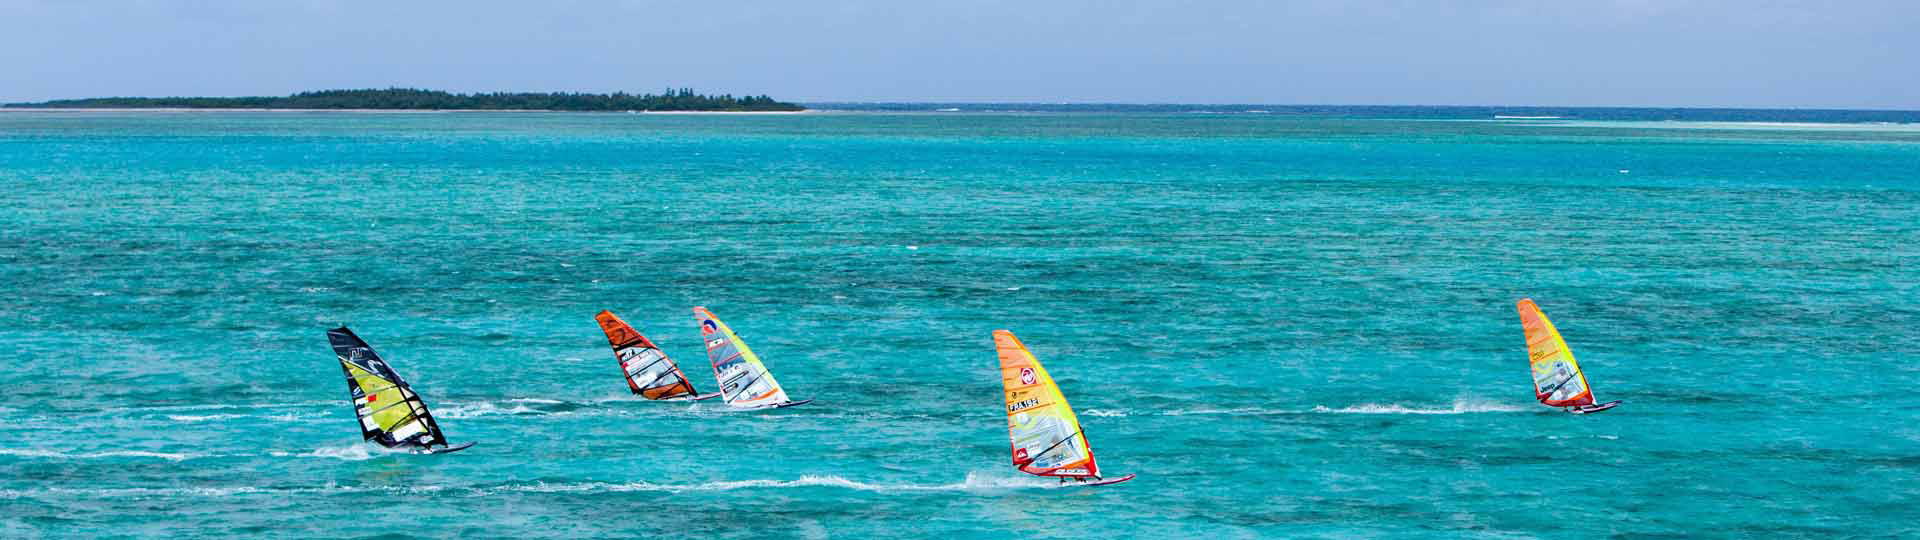 Windsurfing on the lagoon in New Caledonia